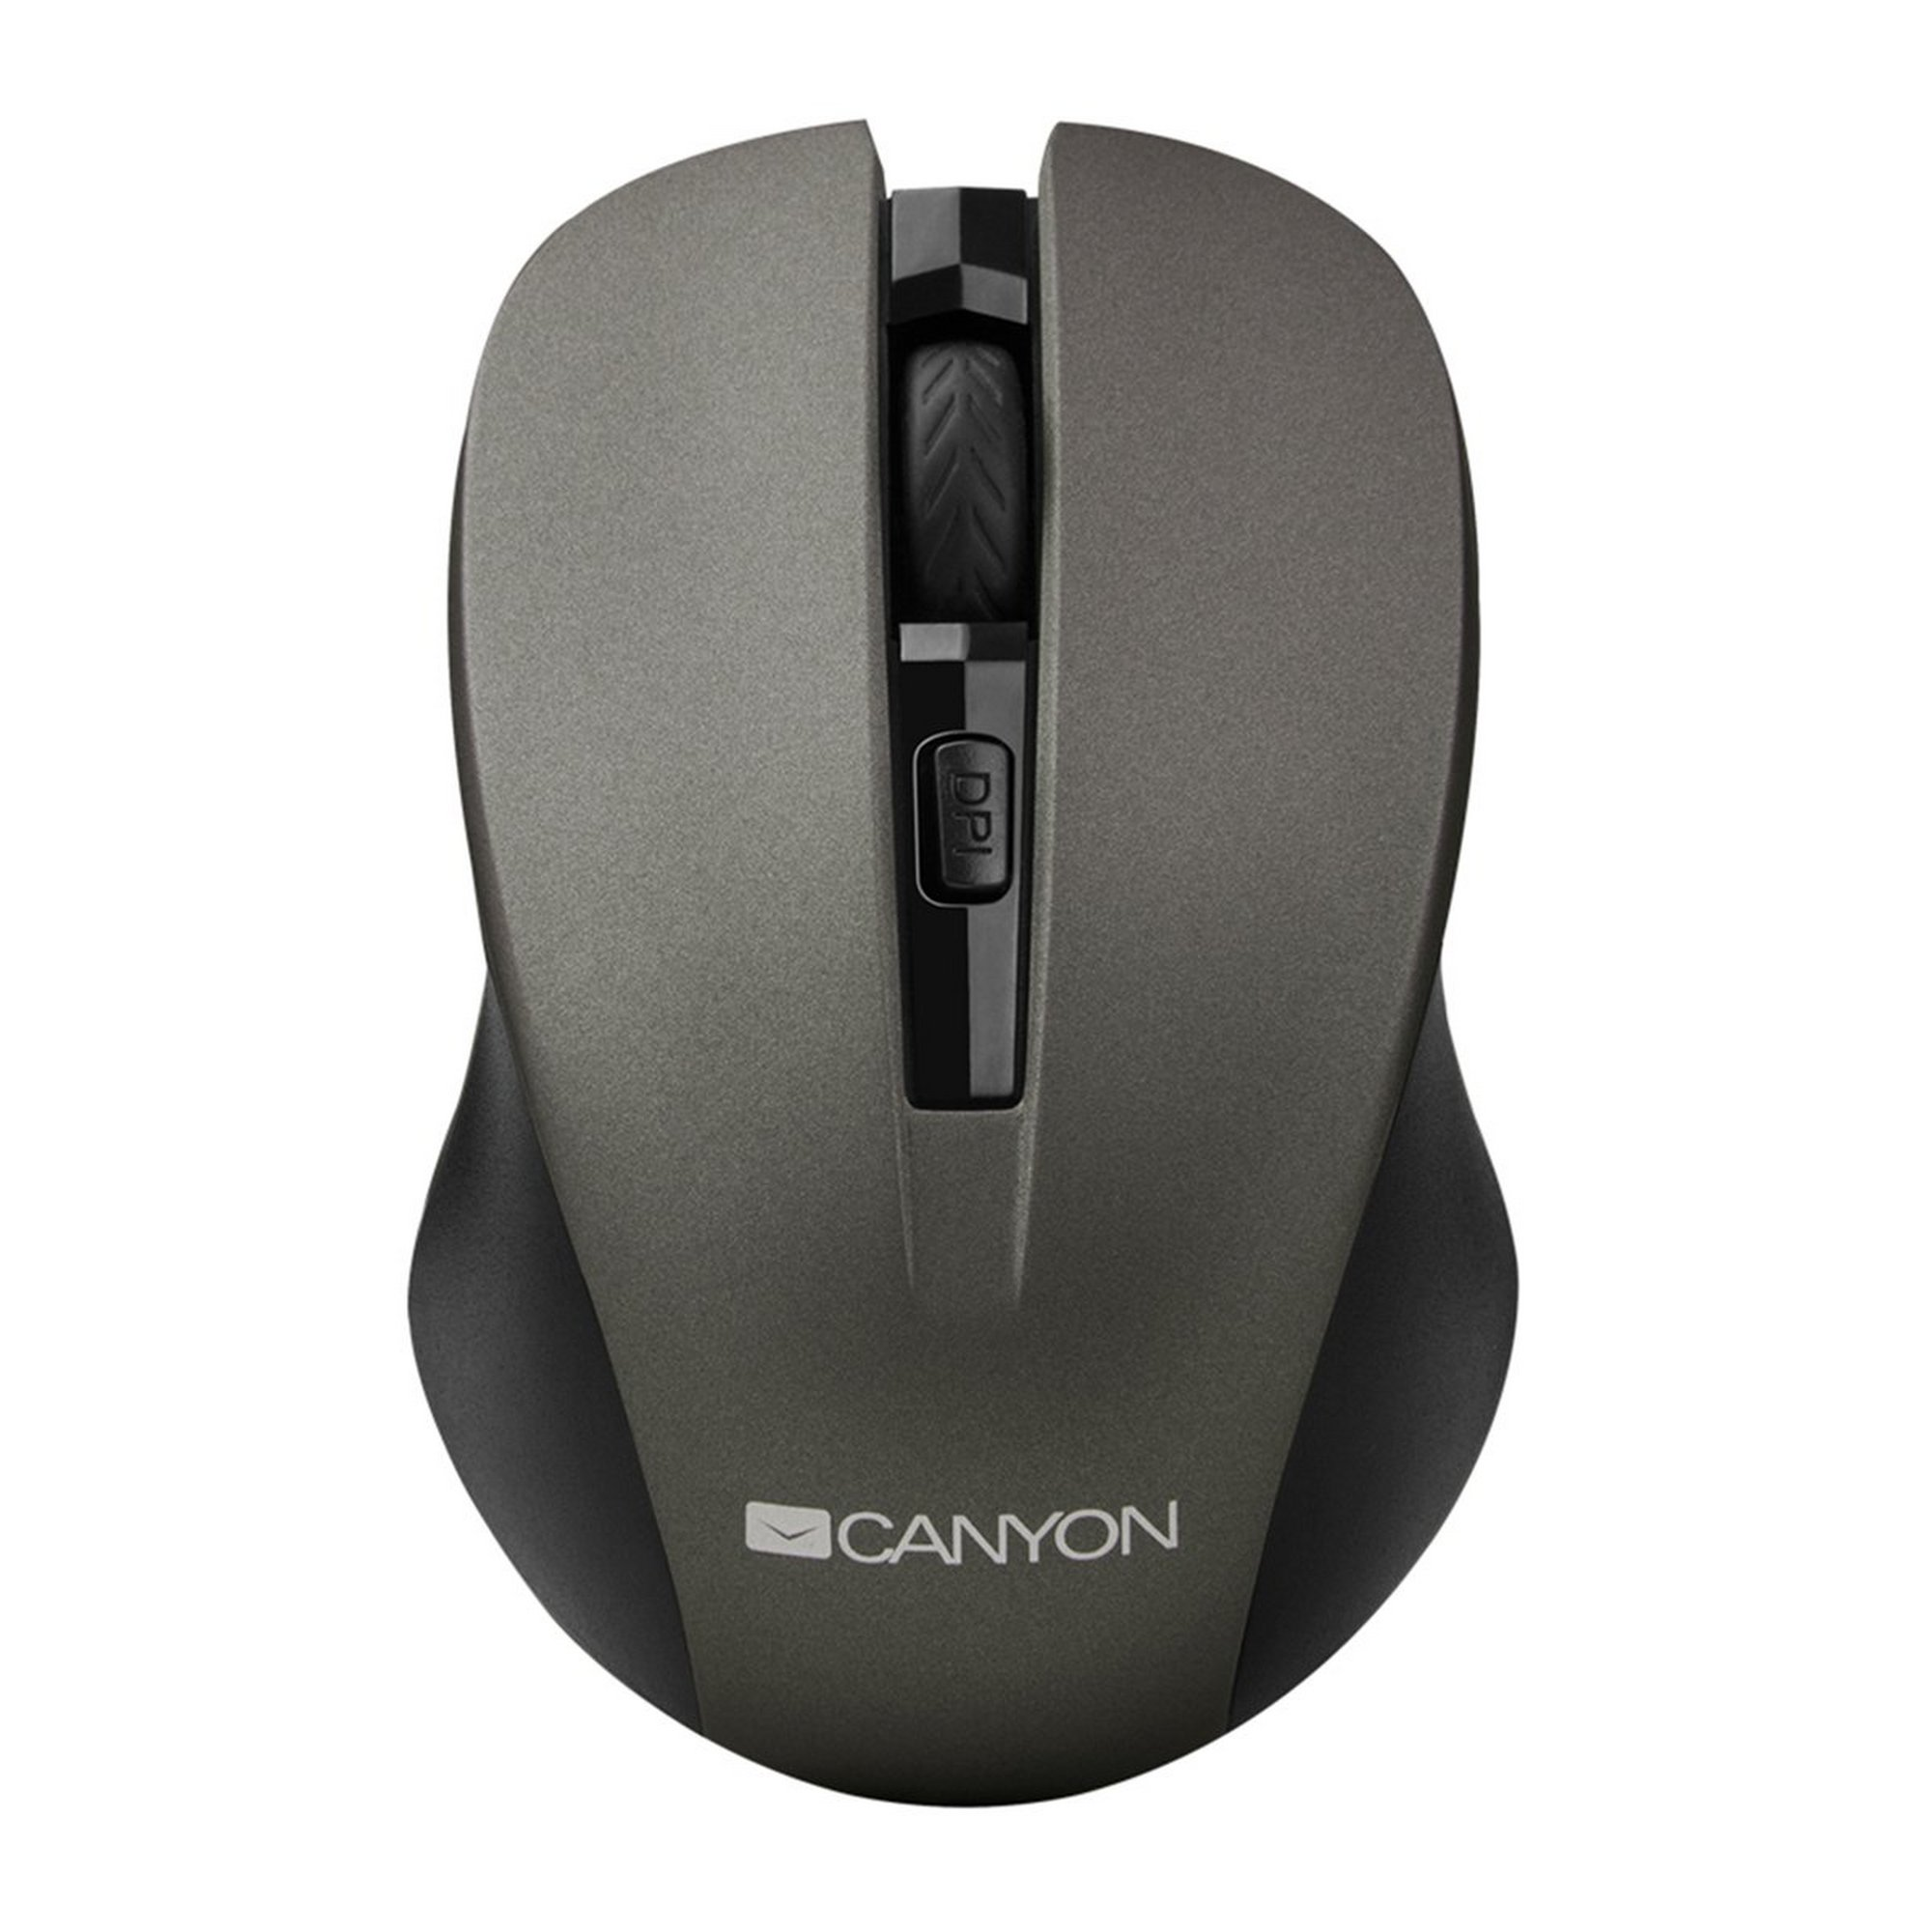 Image of Canyon Comfort Wireless 4 Button Optical Mouse with Switchable DPI